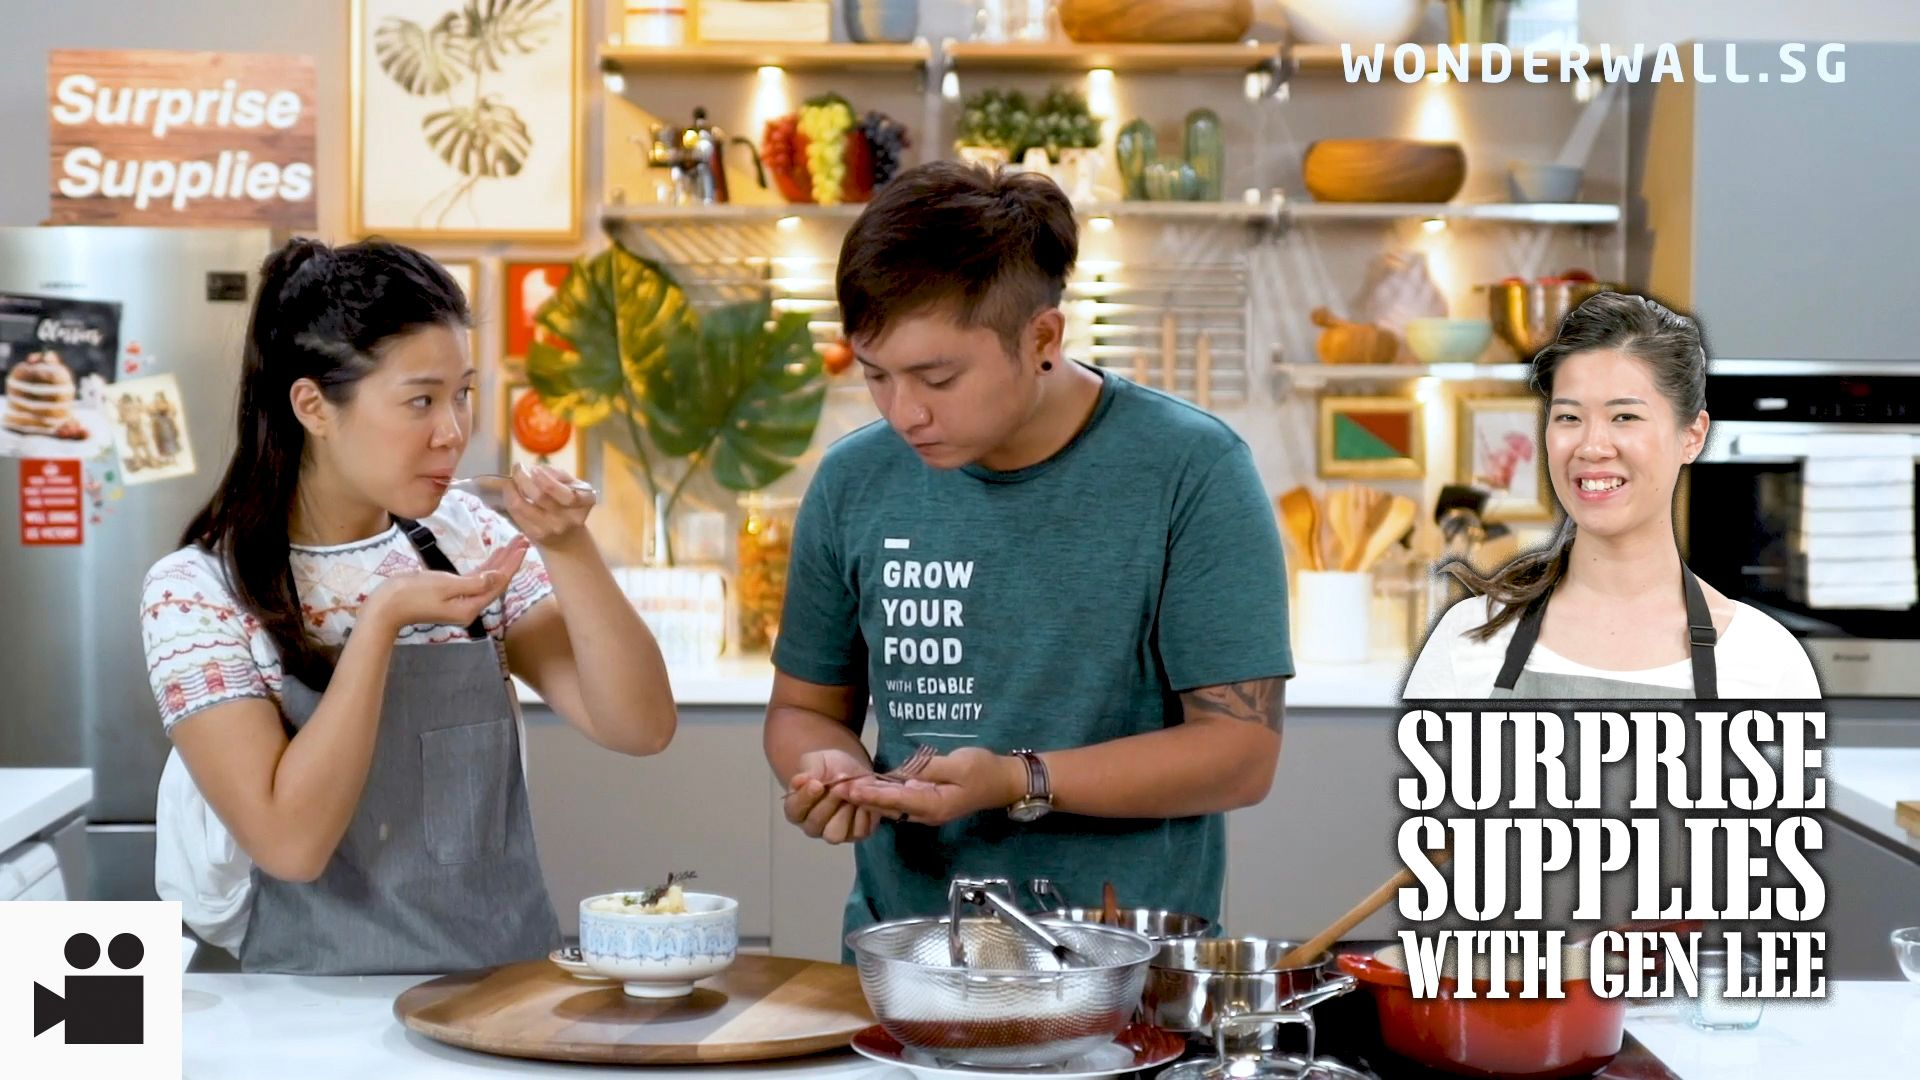 Mushrooms + Microgreens + MasterChef Singapore Finalist = Mouthwatering Magic